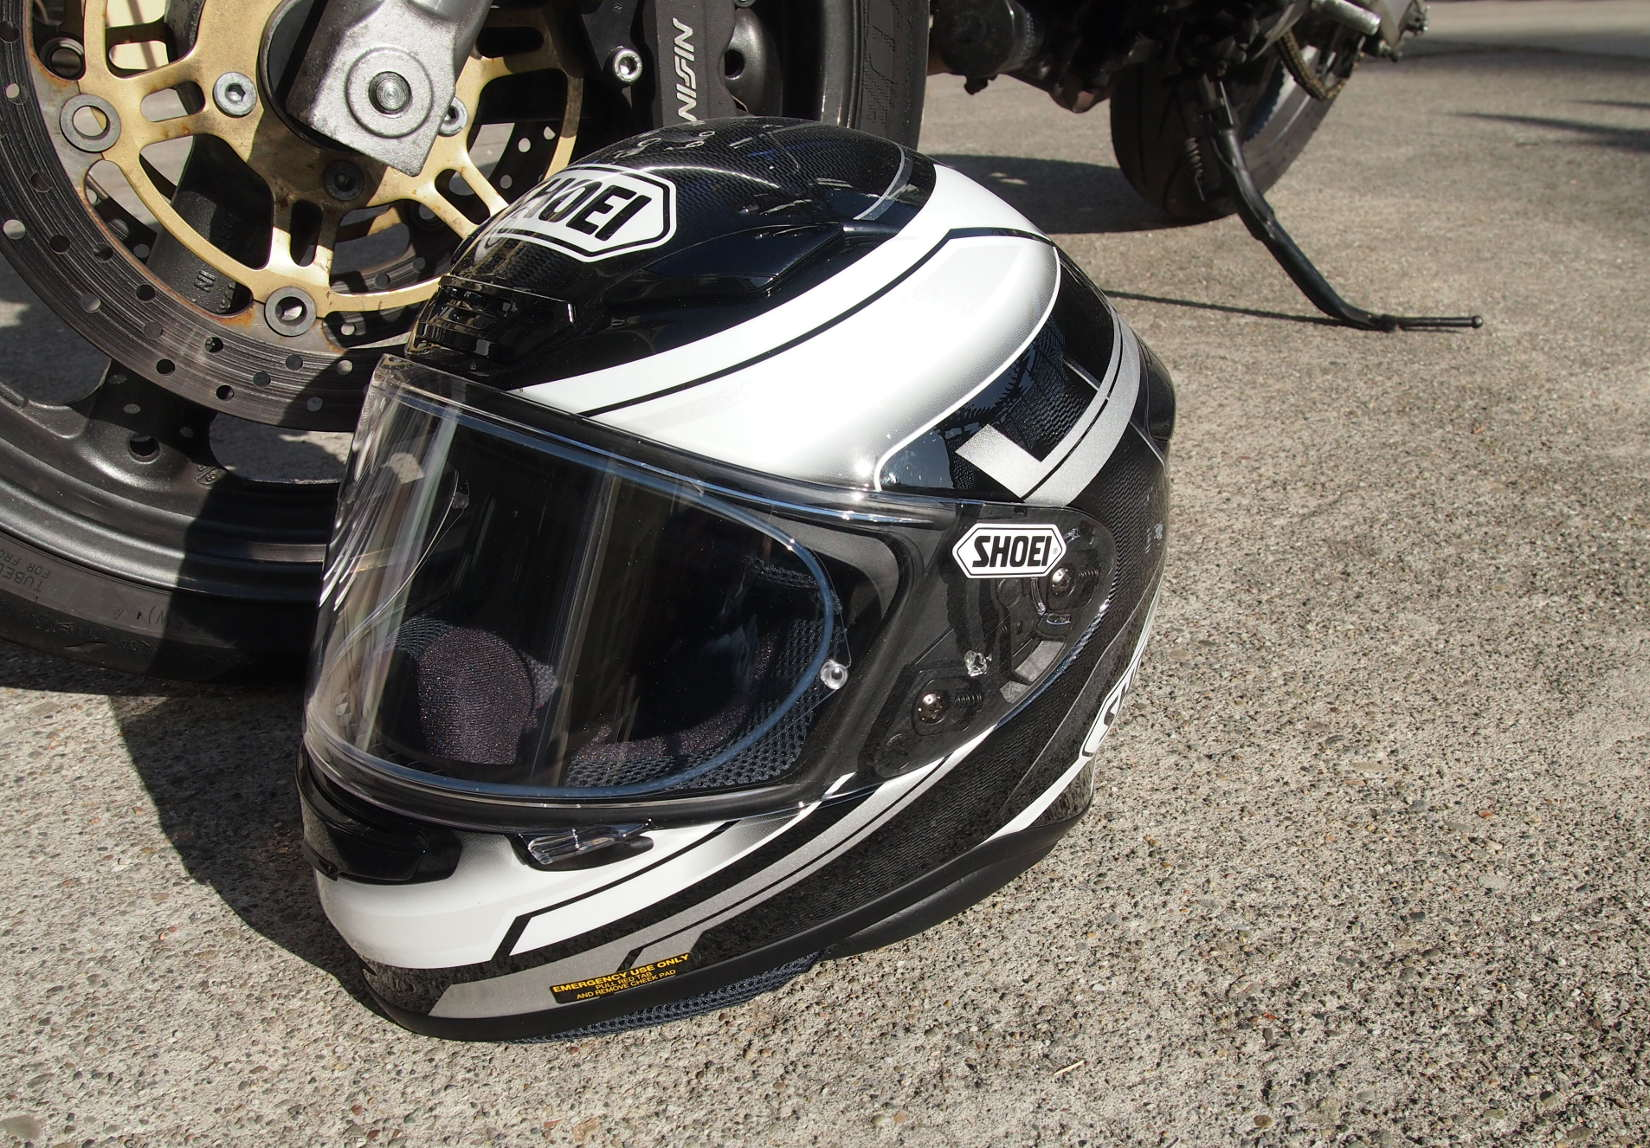 5d86ac76 MD Product Review: Shoei RF-1200 Helmet - MotorcycleDaily.com ...